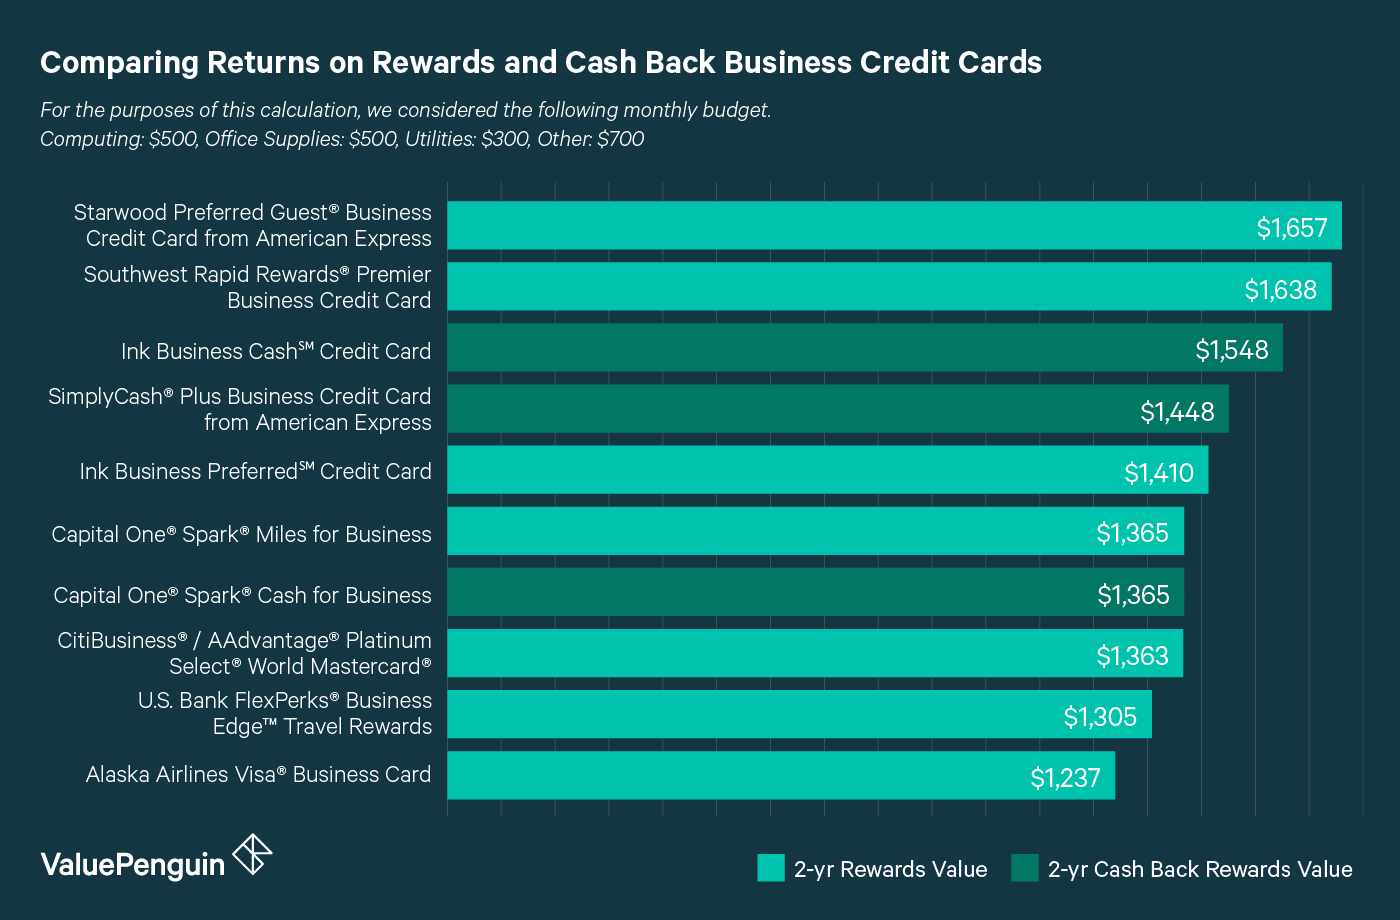 How the cash back and rewards business credit cards compare to one another in terms of rewards.